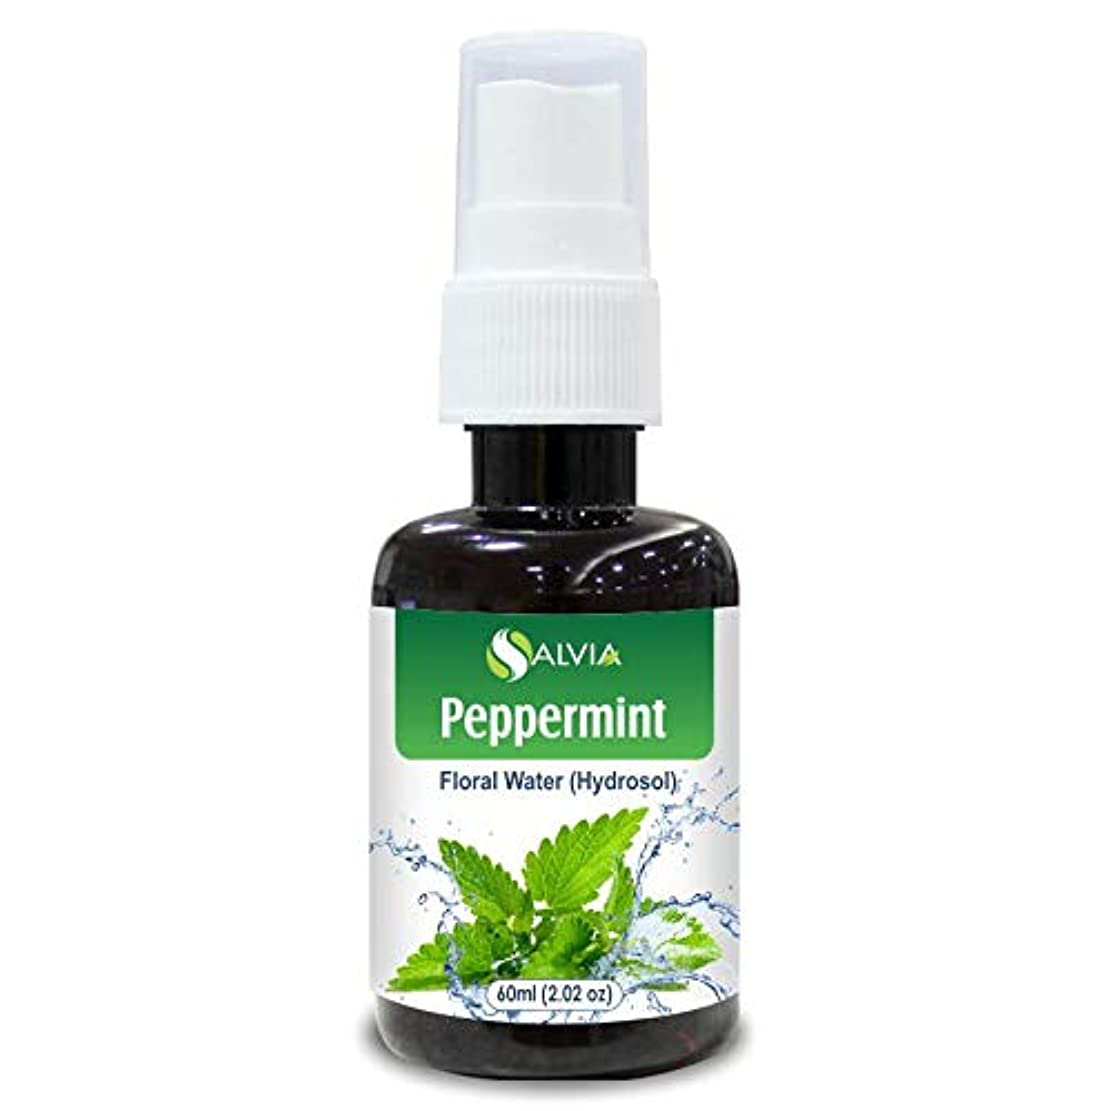 十代有毒なキャリアPeppermint Floral Water 60ml (Hydrosol) 100% Pure And Natural